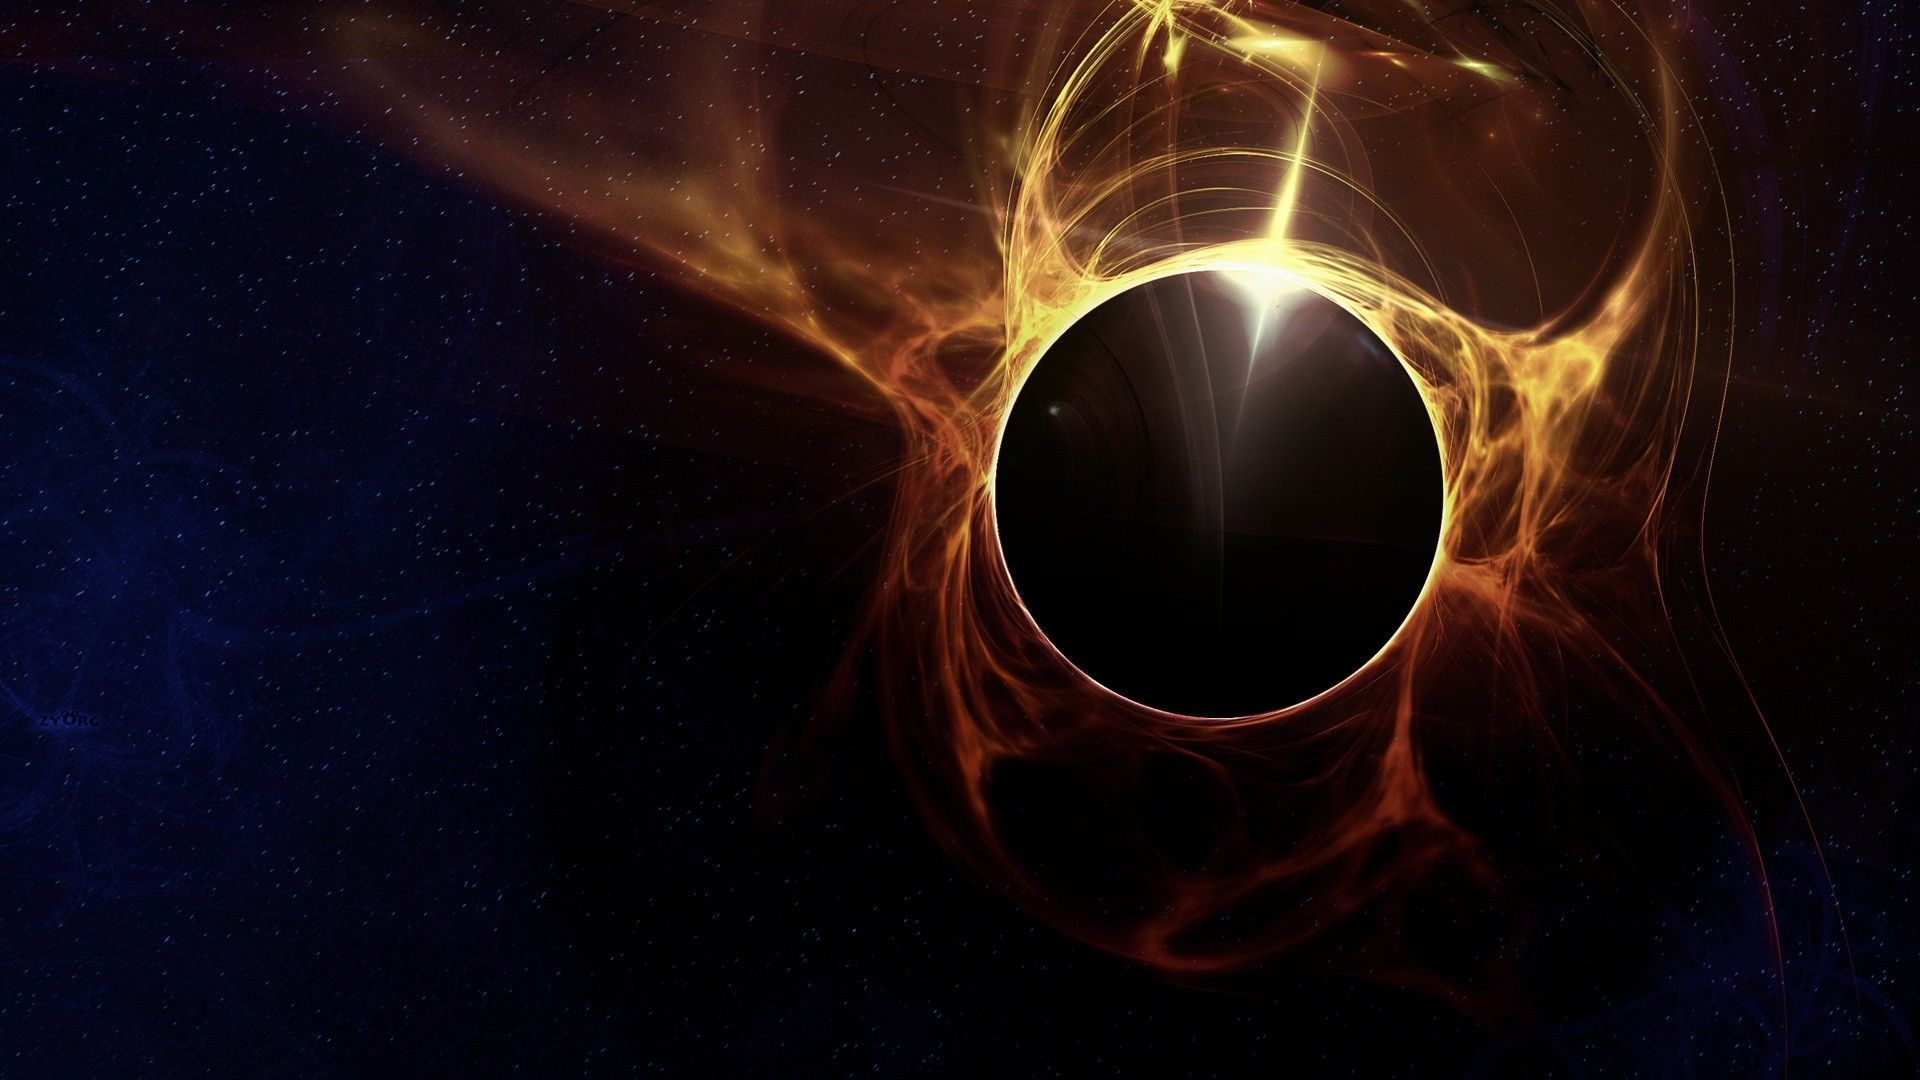 3D Eclipse Wallpapers - Top Free 3D Eclipse Backgrounds ...